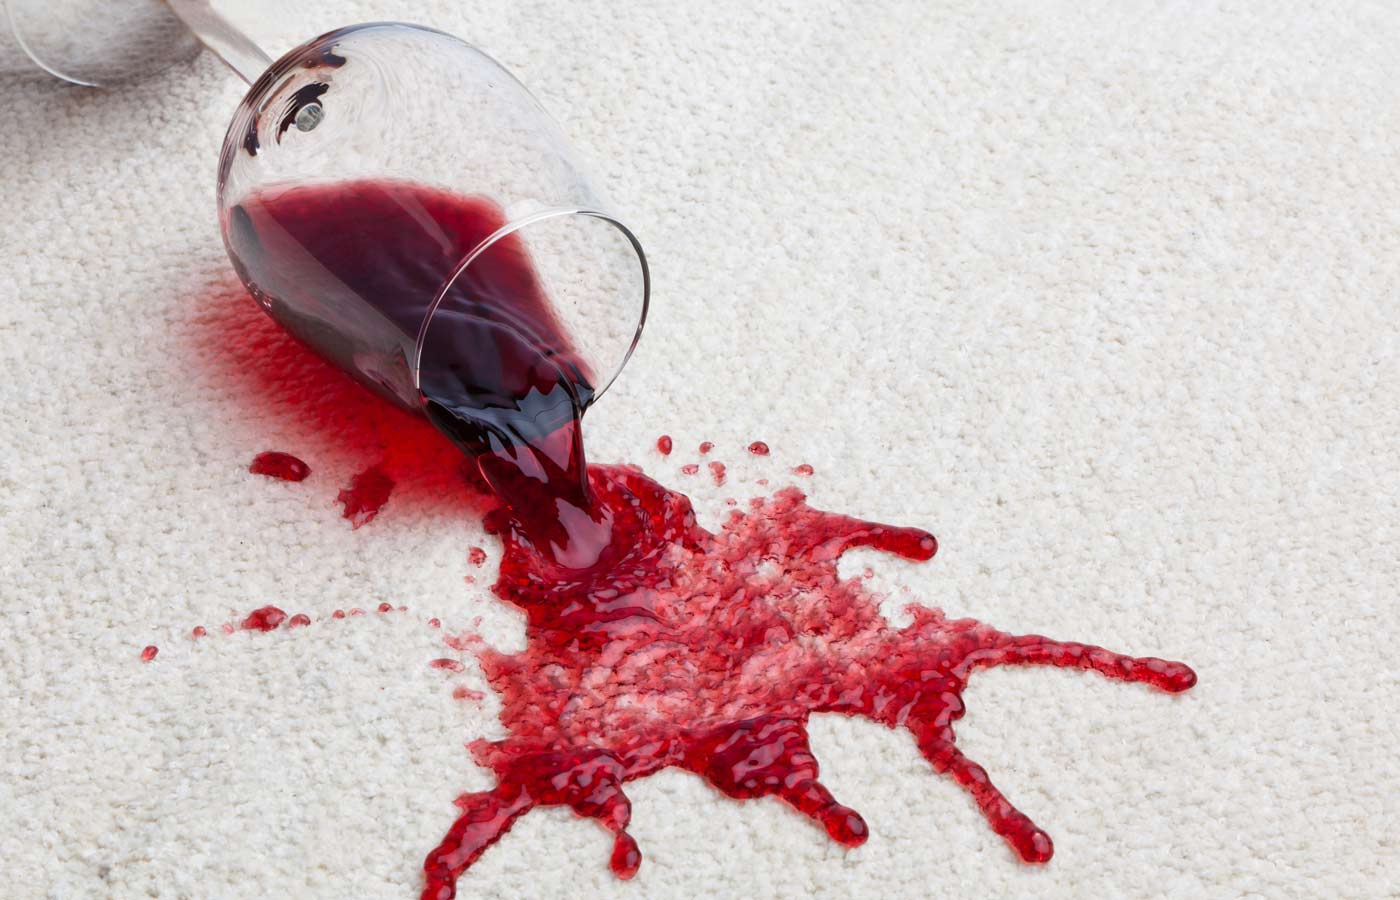 wine spilled on the carpet